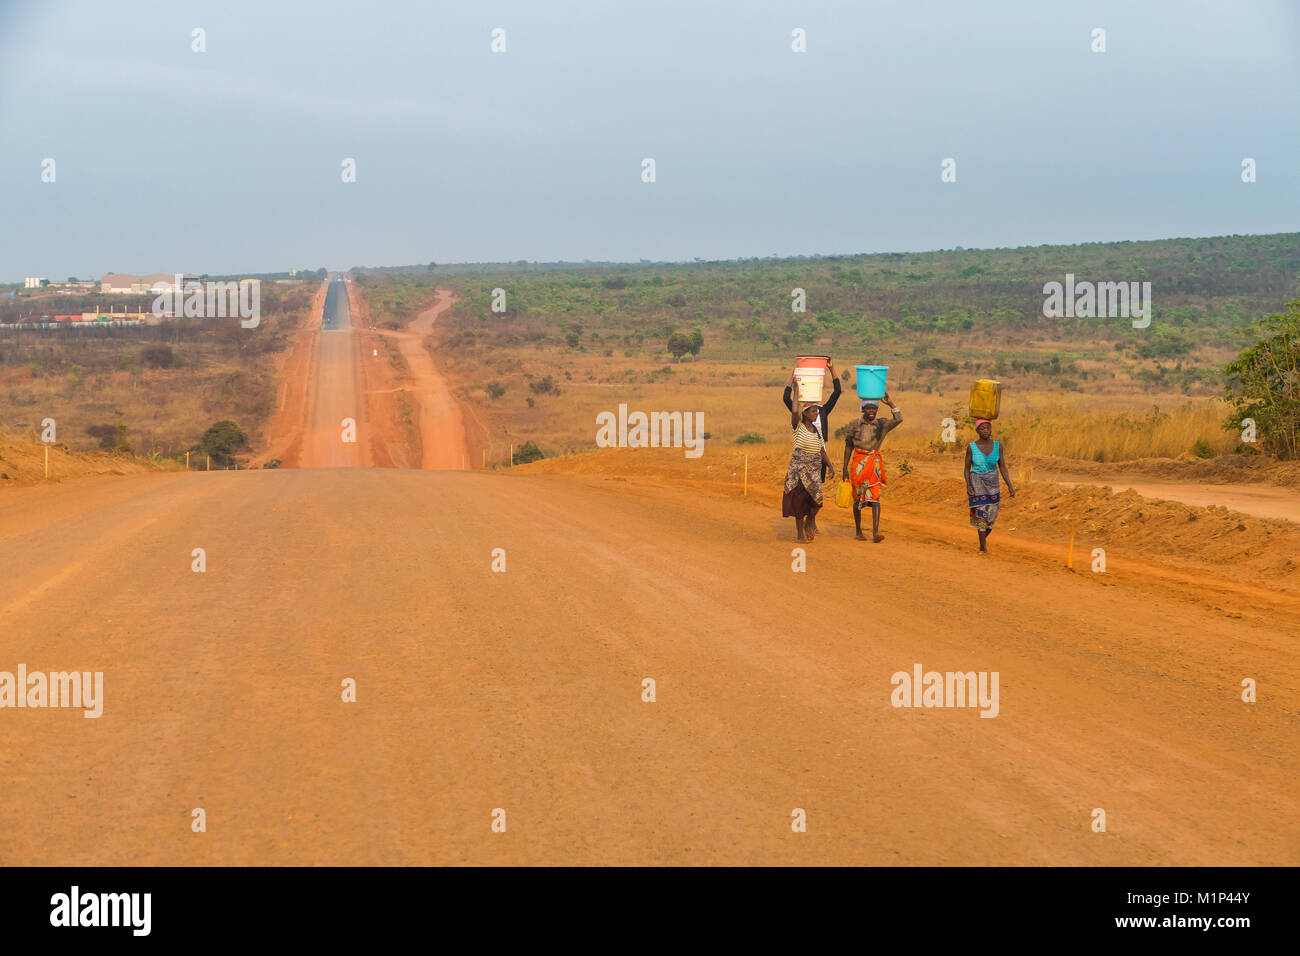 Local women carrying water, Malanje province, Angola, Africa - Stock Image